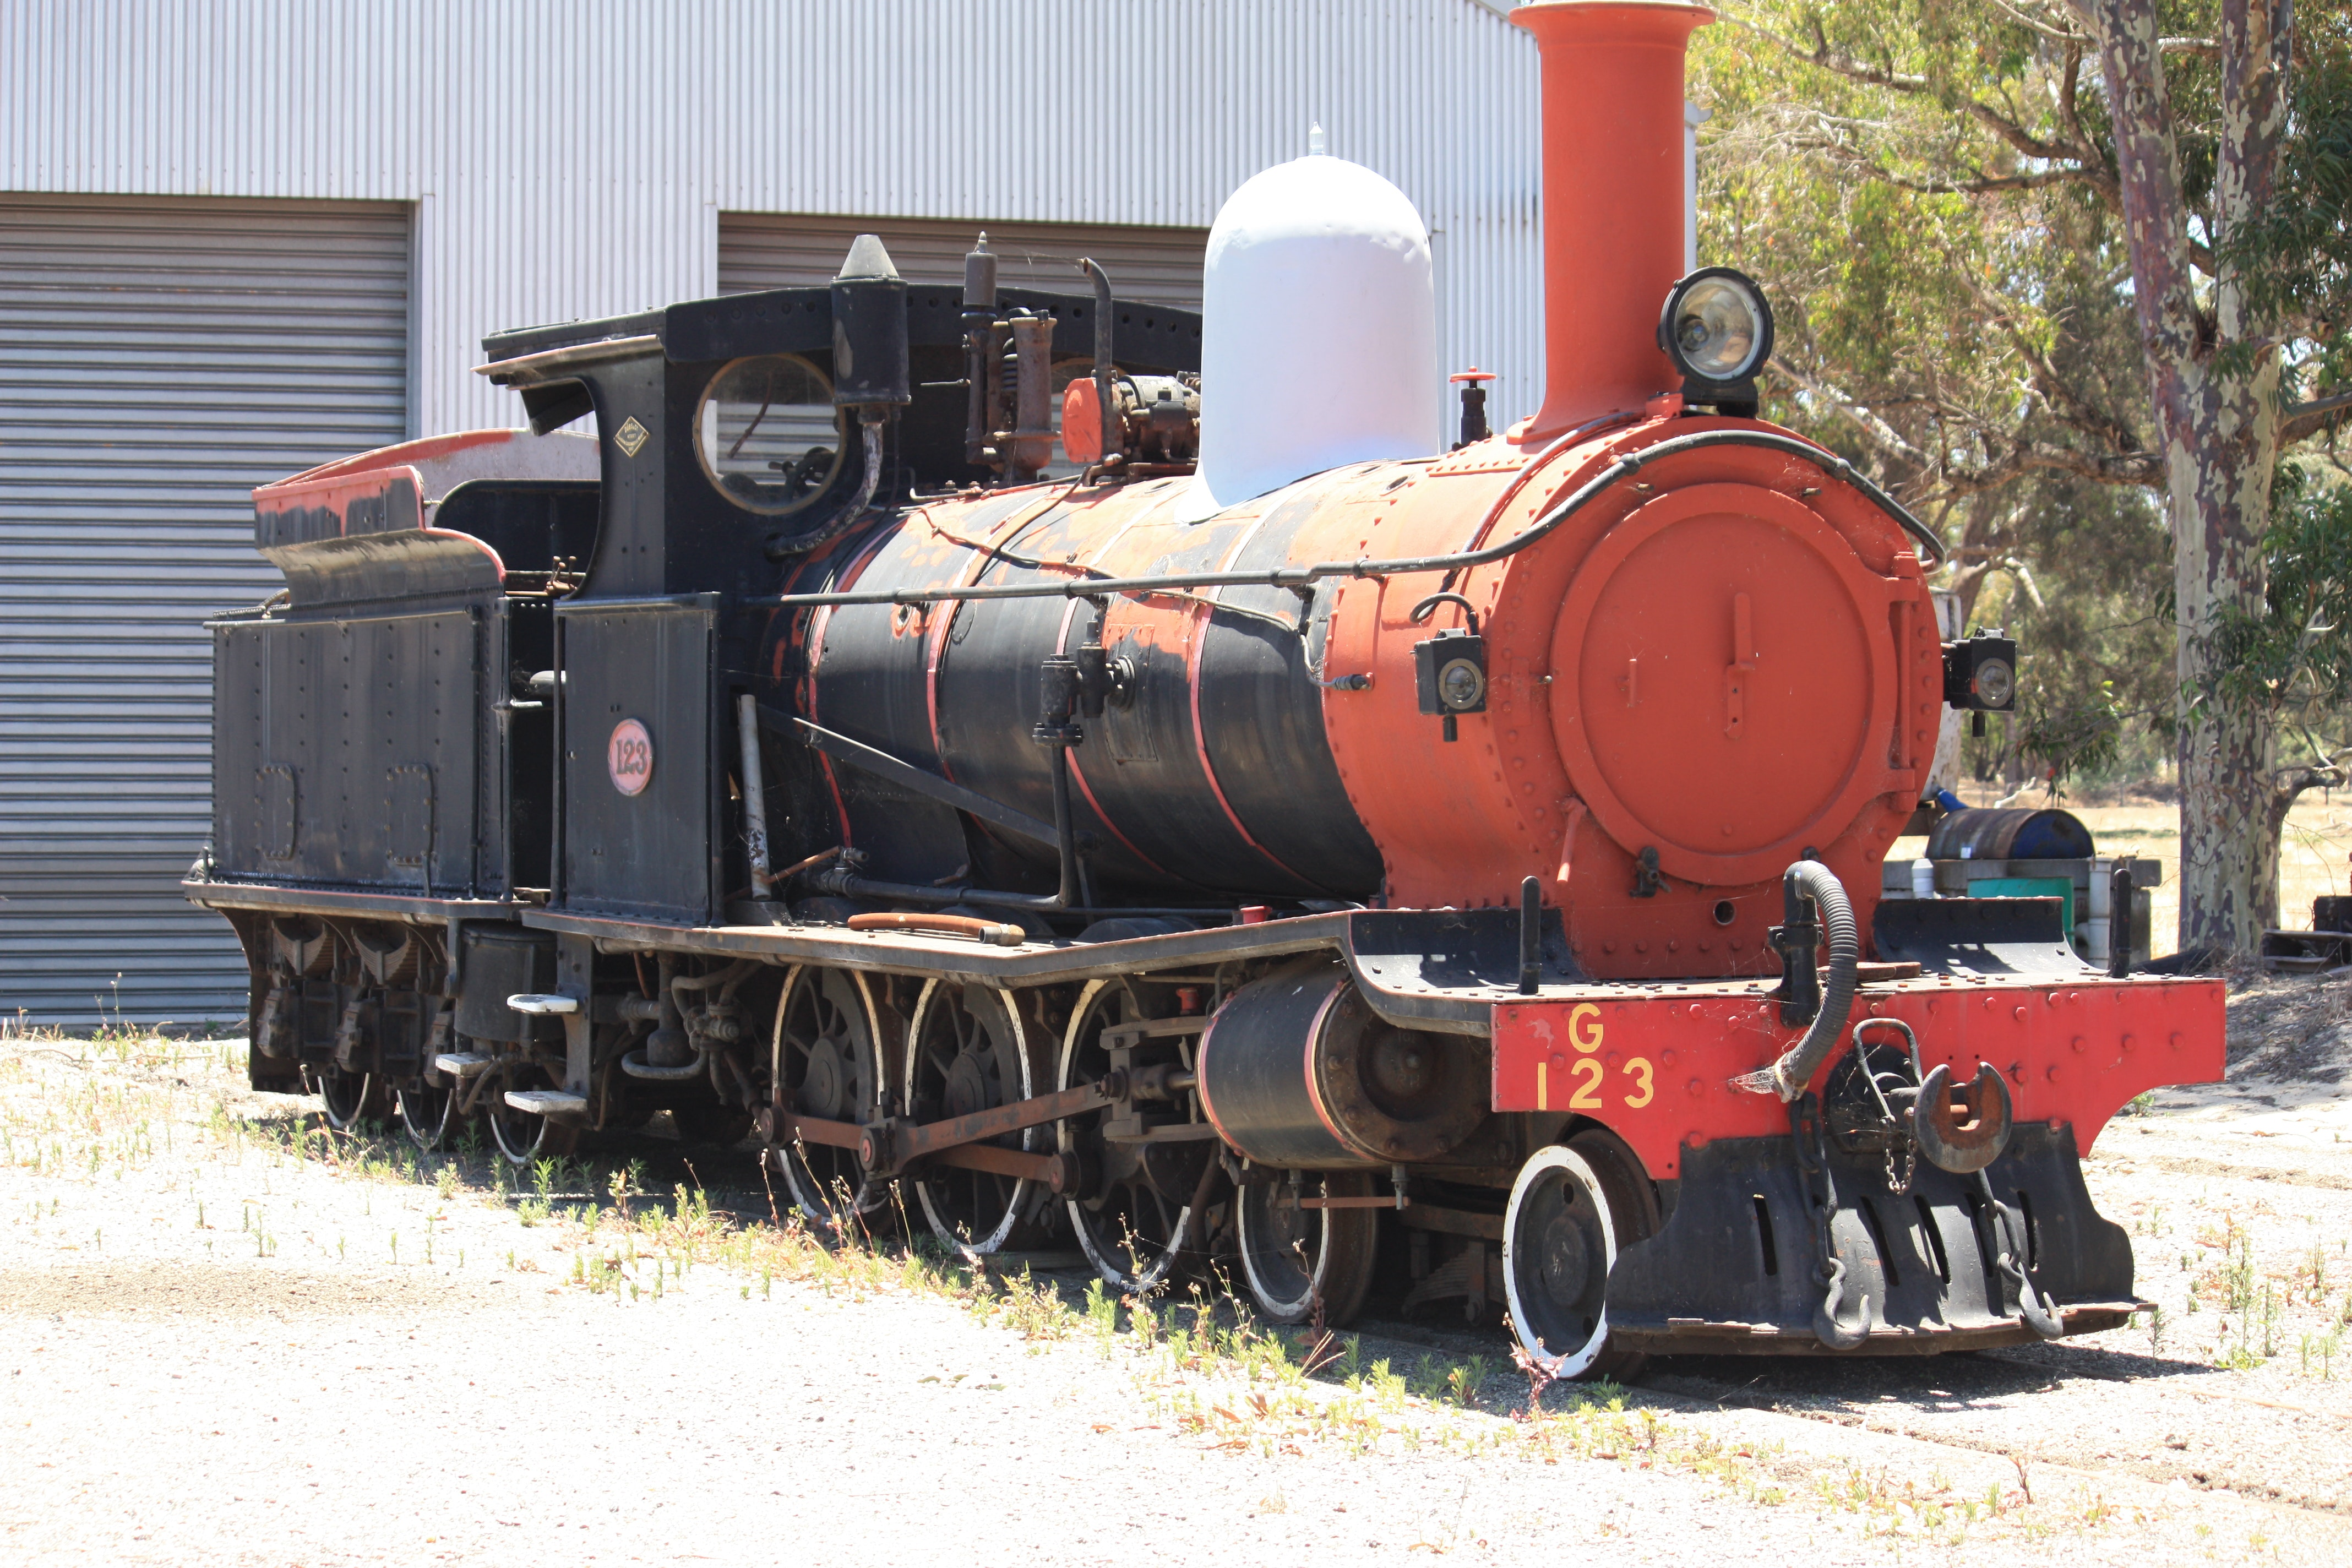 G123 at Hotham Valley Railway, Pinjarra